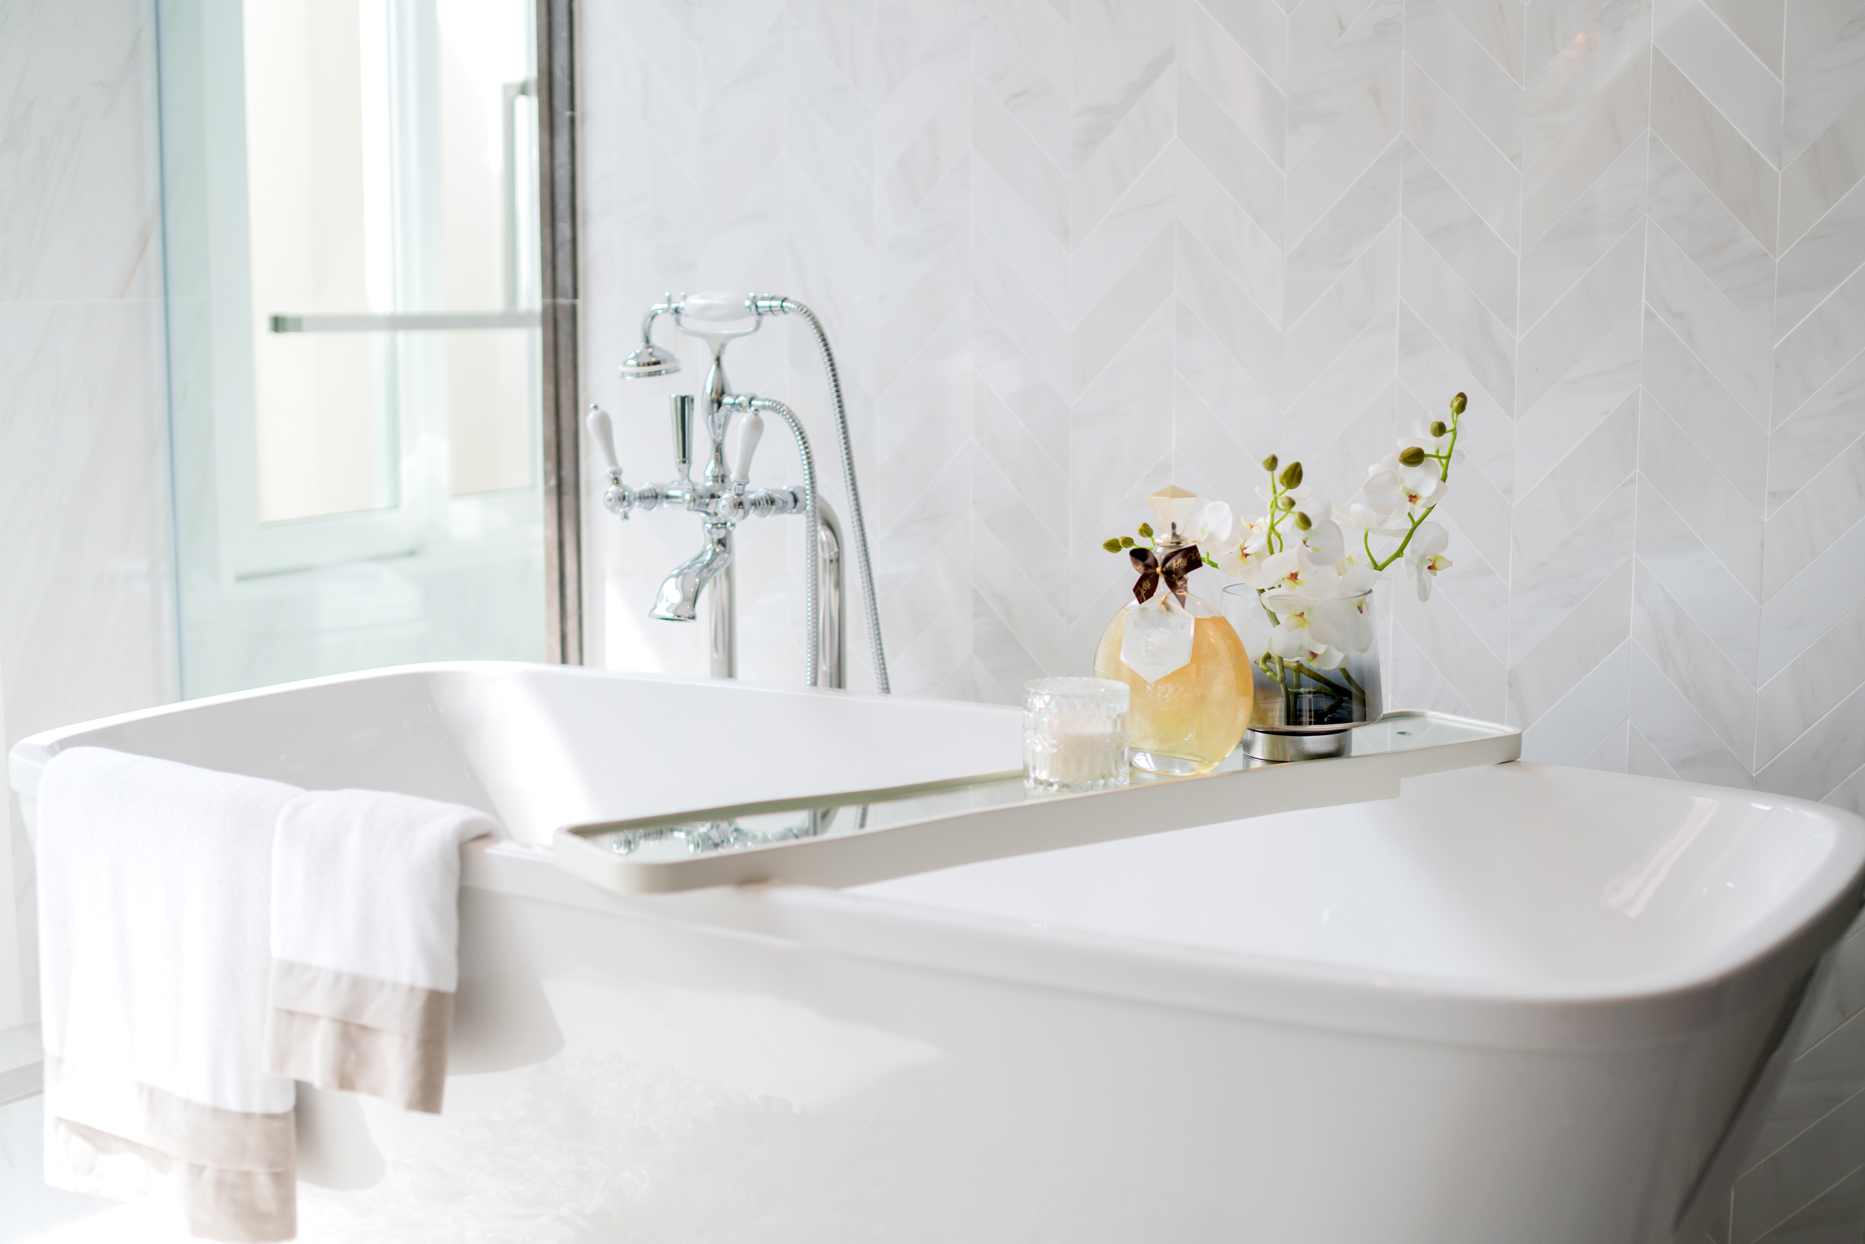 chrome faucet on white bathtub with table and towels